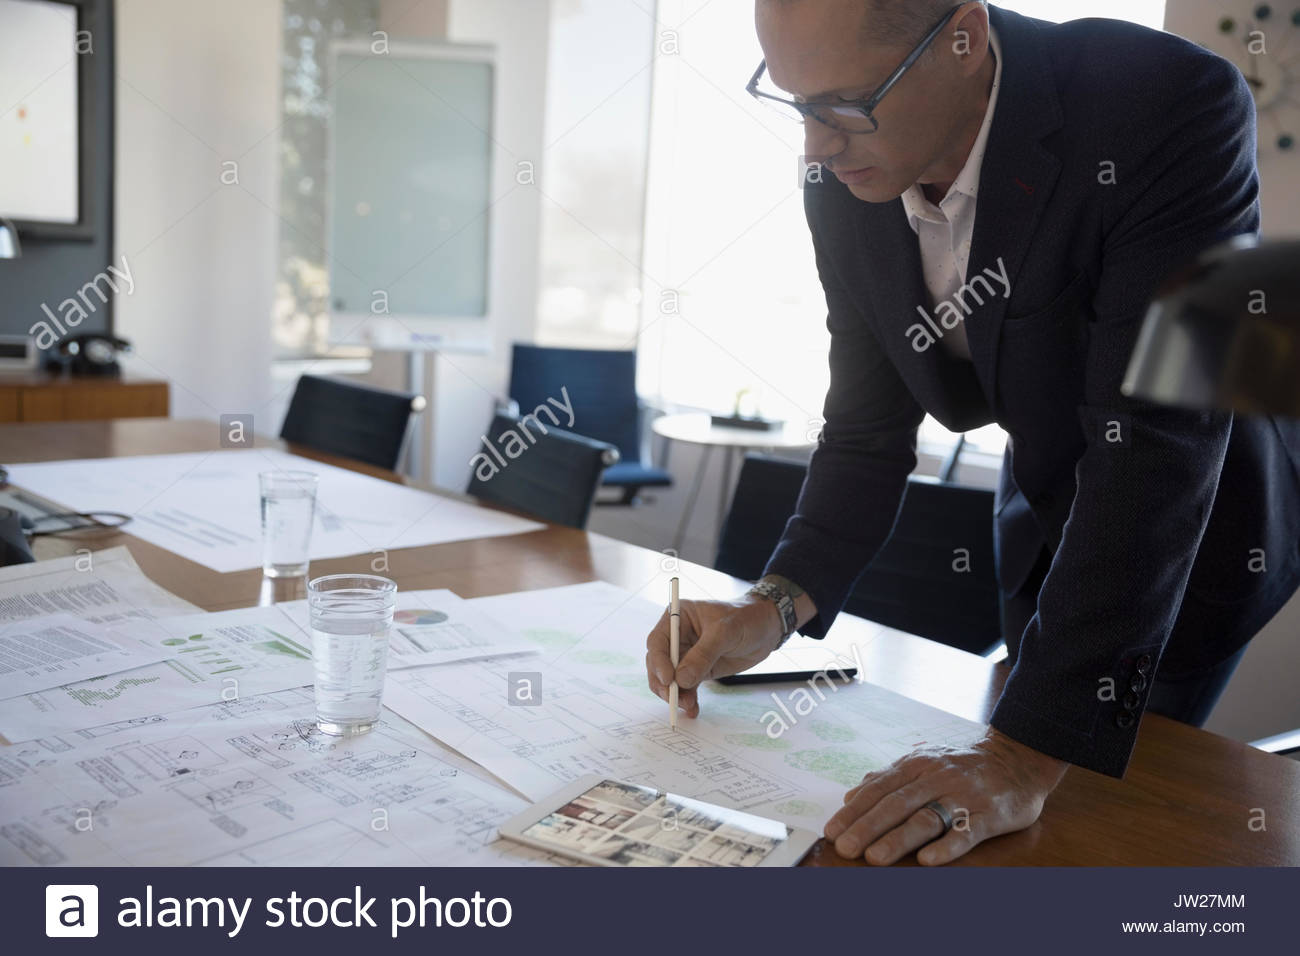 Male architect reviewing, editing blueprints in conference room - Stock Image